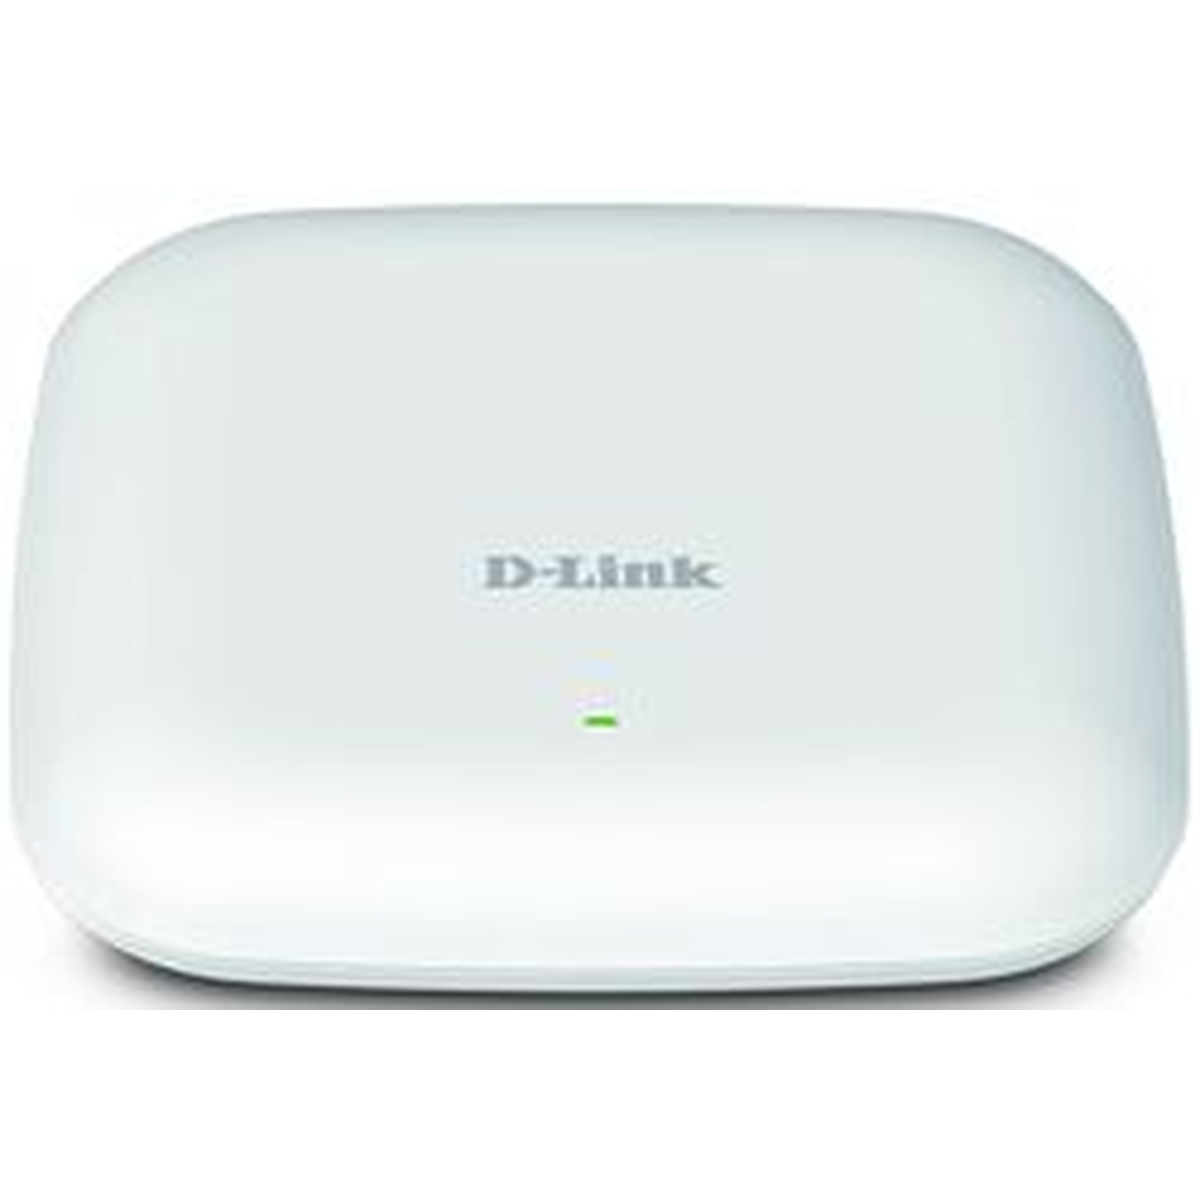 D-Link DAP-2610 Wireless AC1300 Wave2 Parallel-Band PoE AP